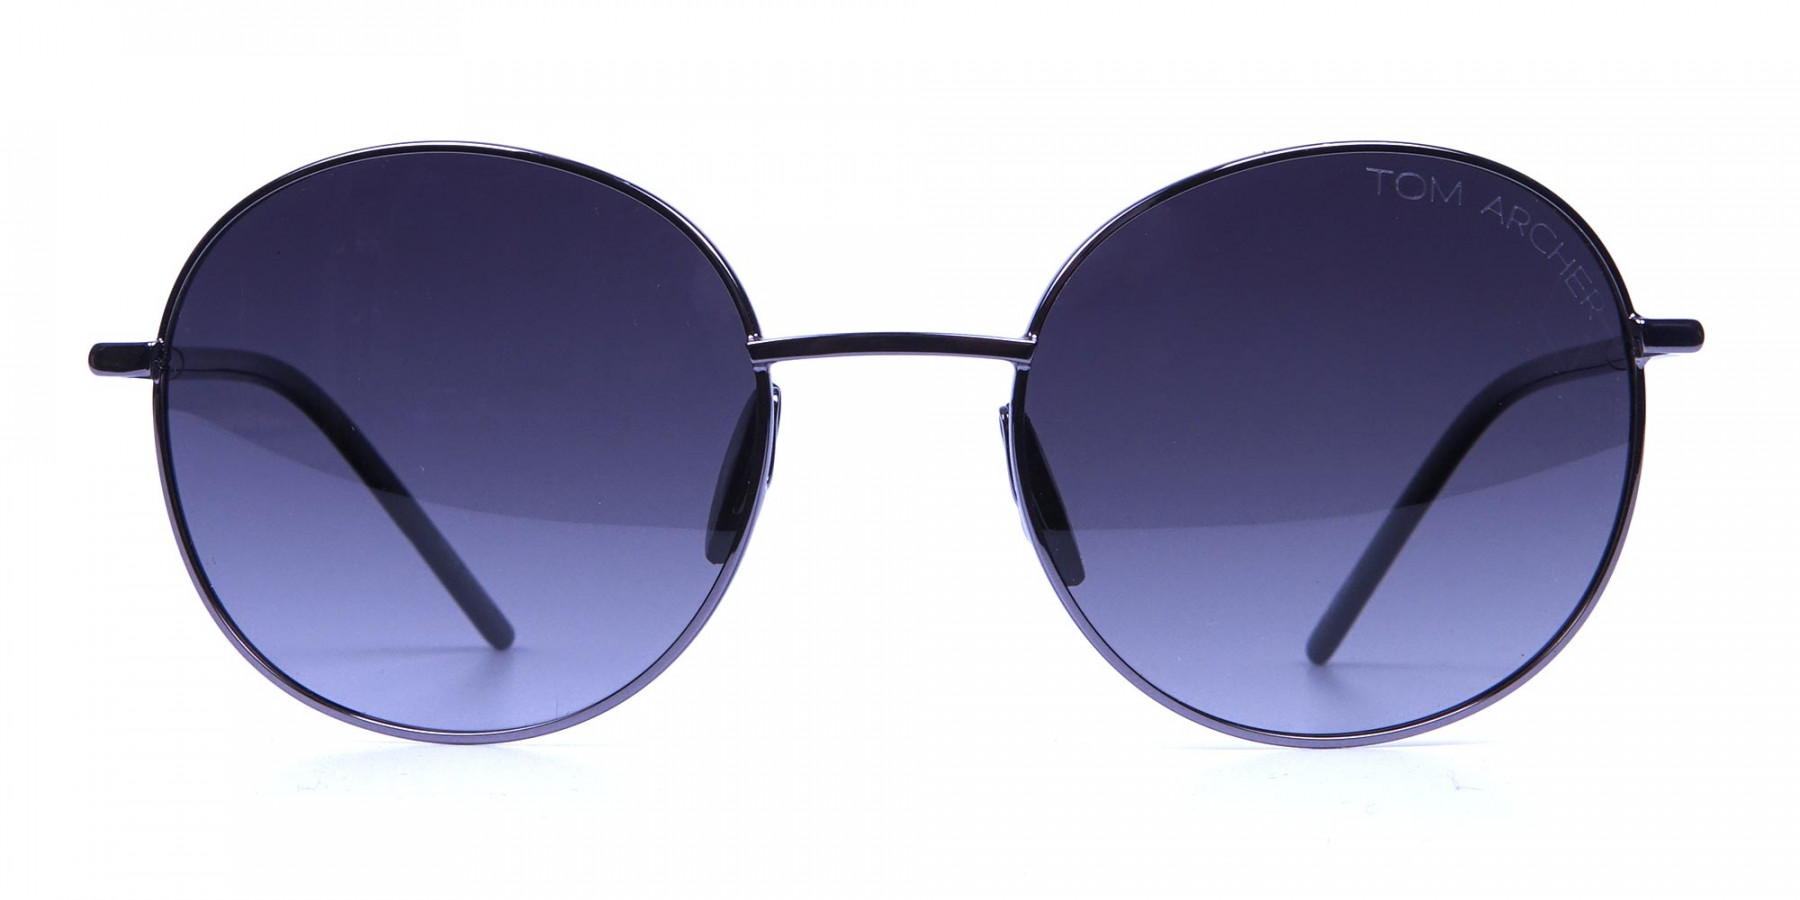 Gunmetal Sunglasses for Narrow Faces -2